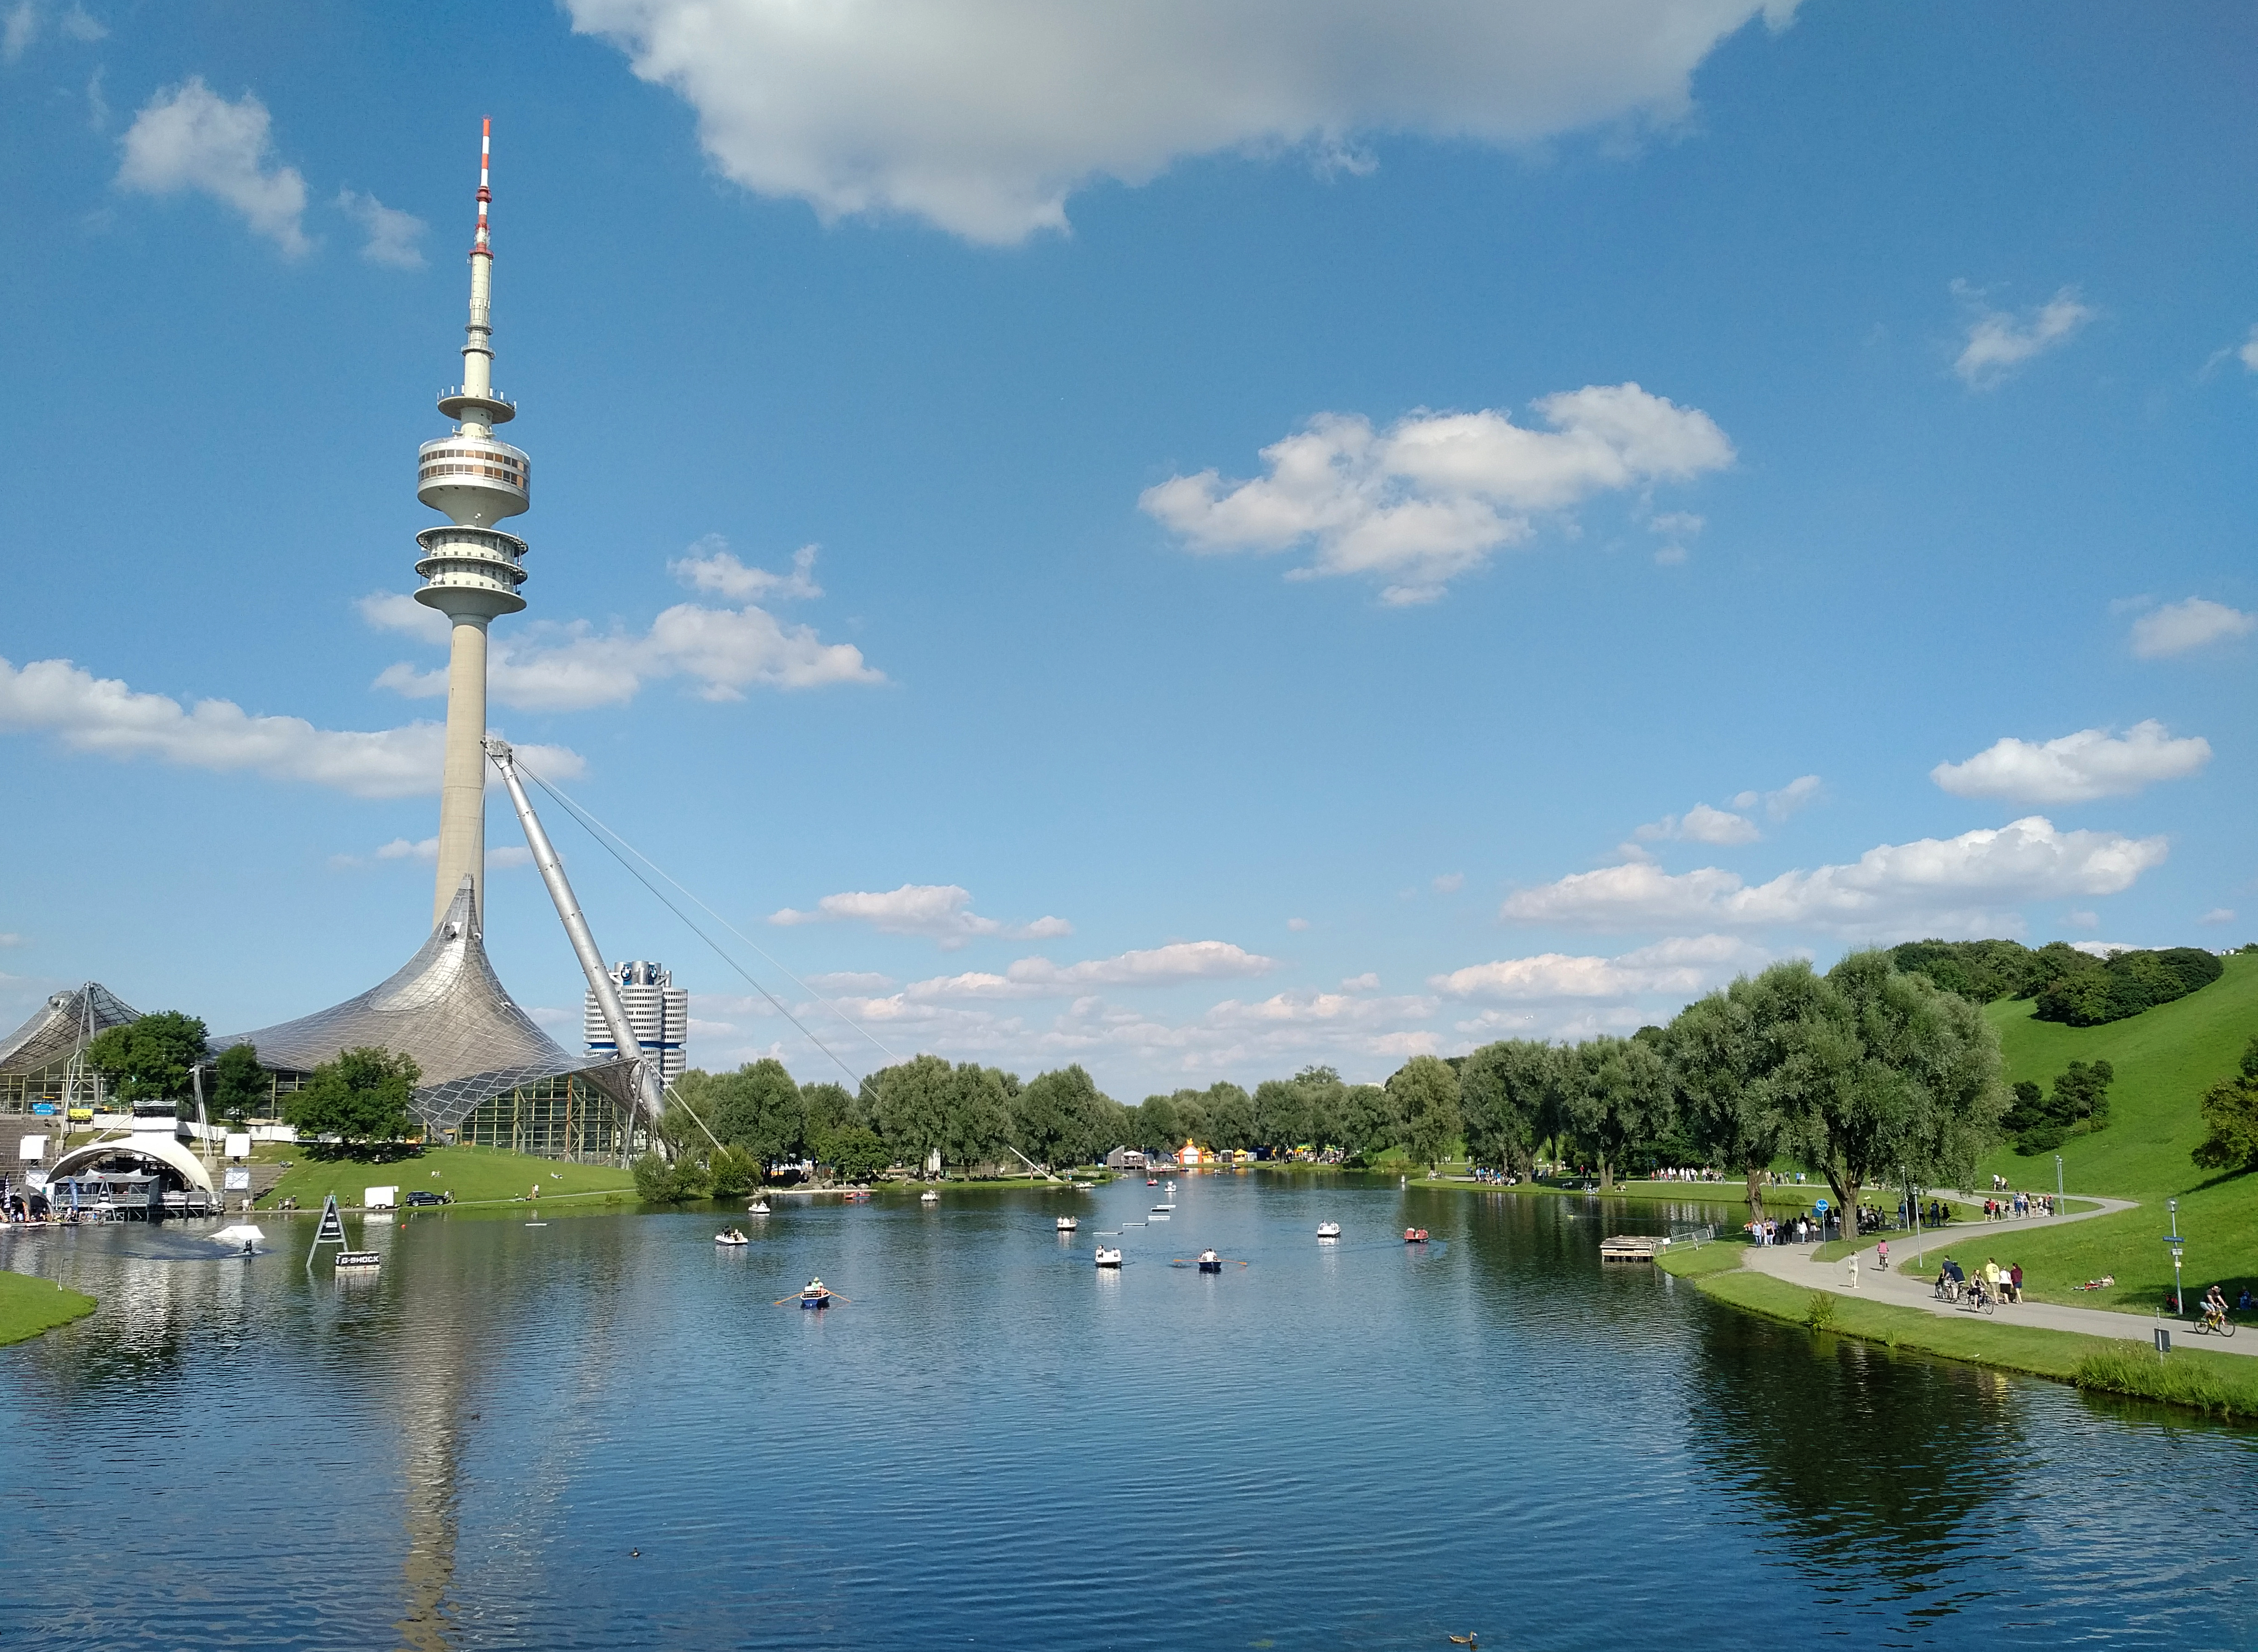 Olympic park and tower, Munich